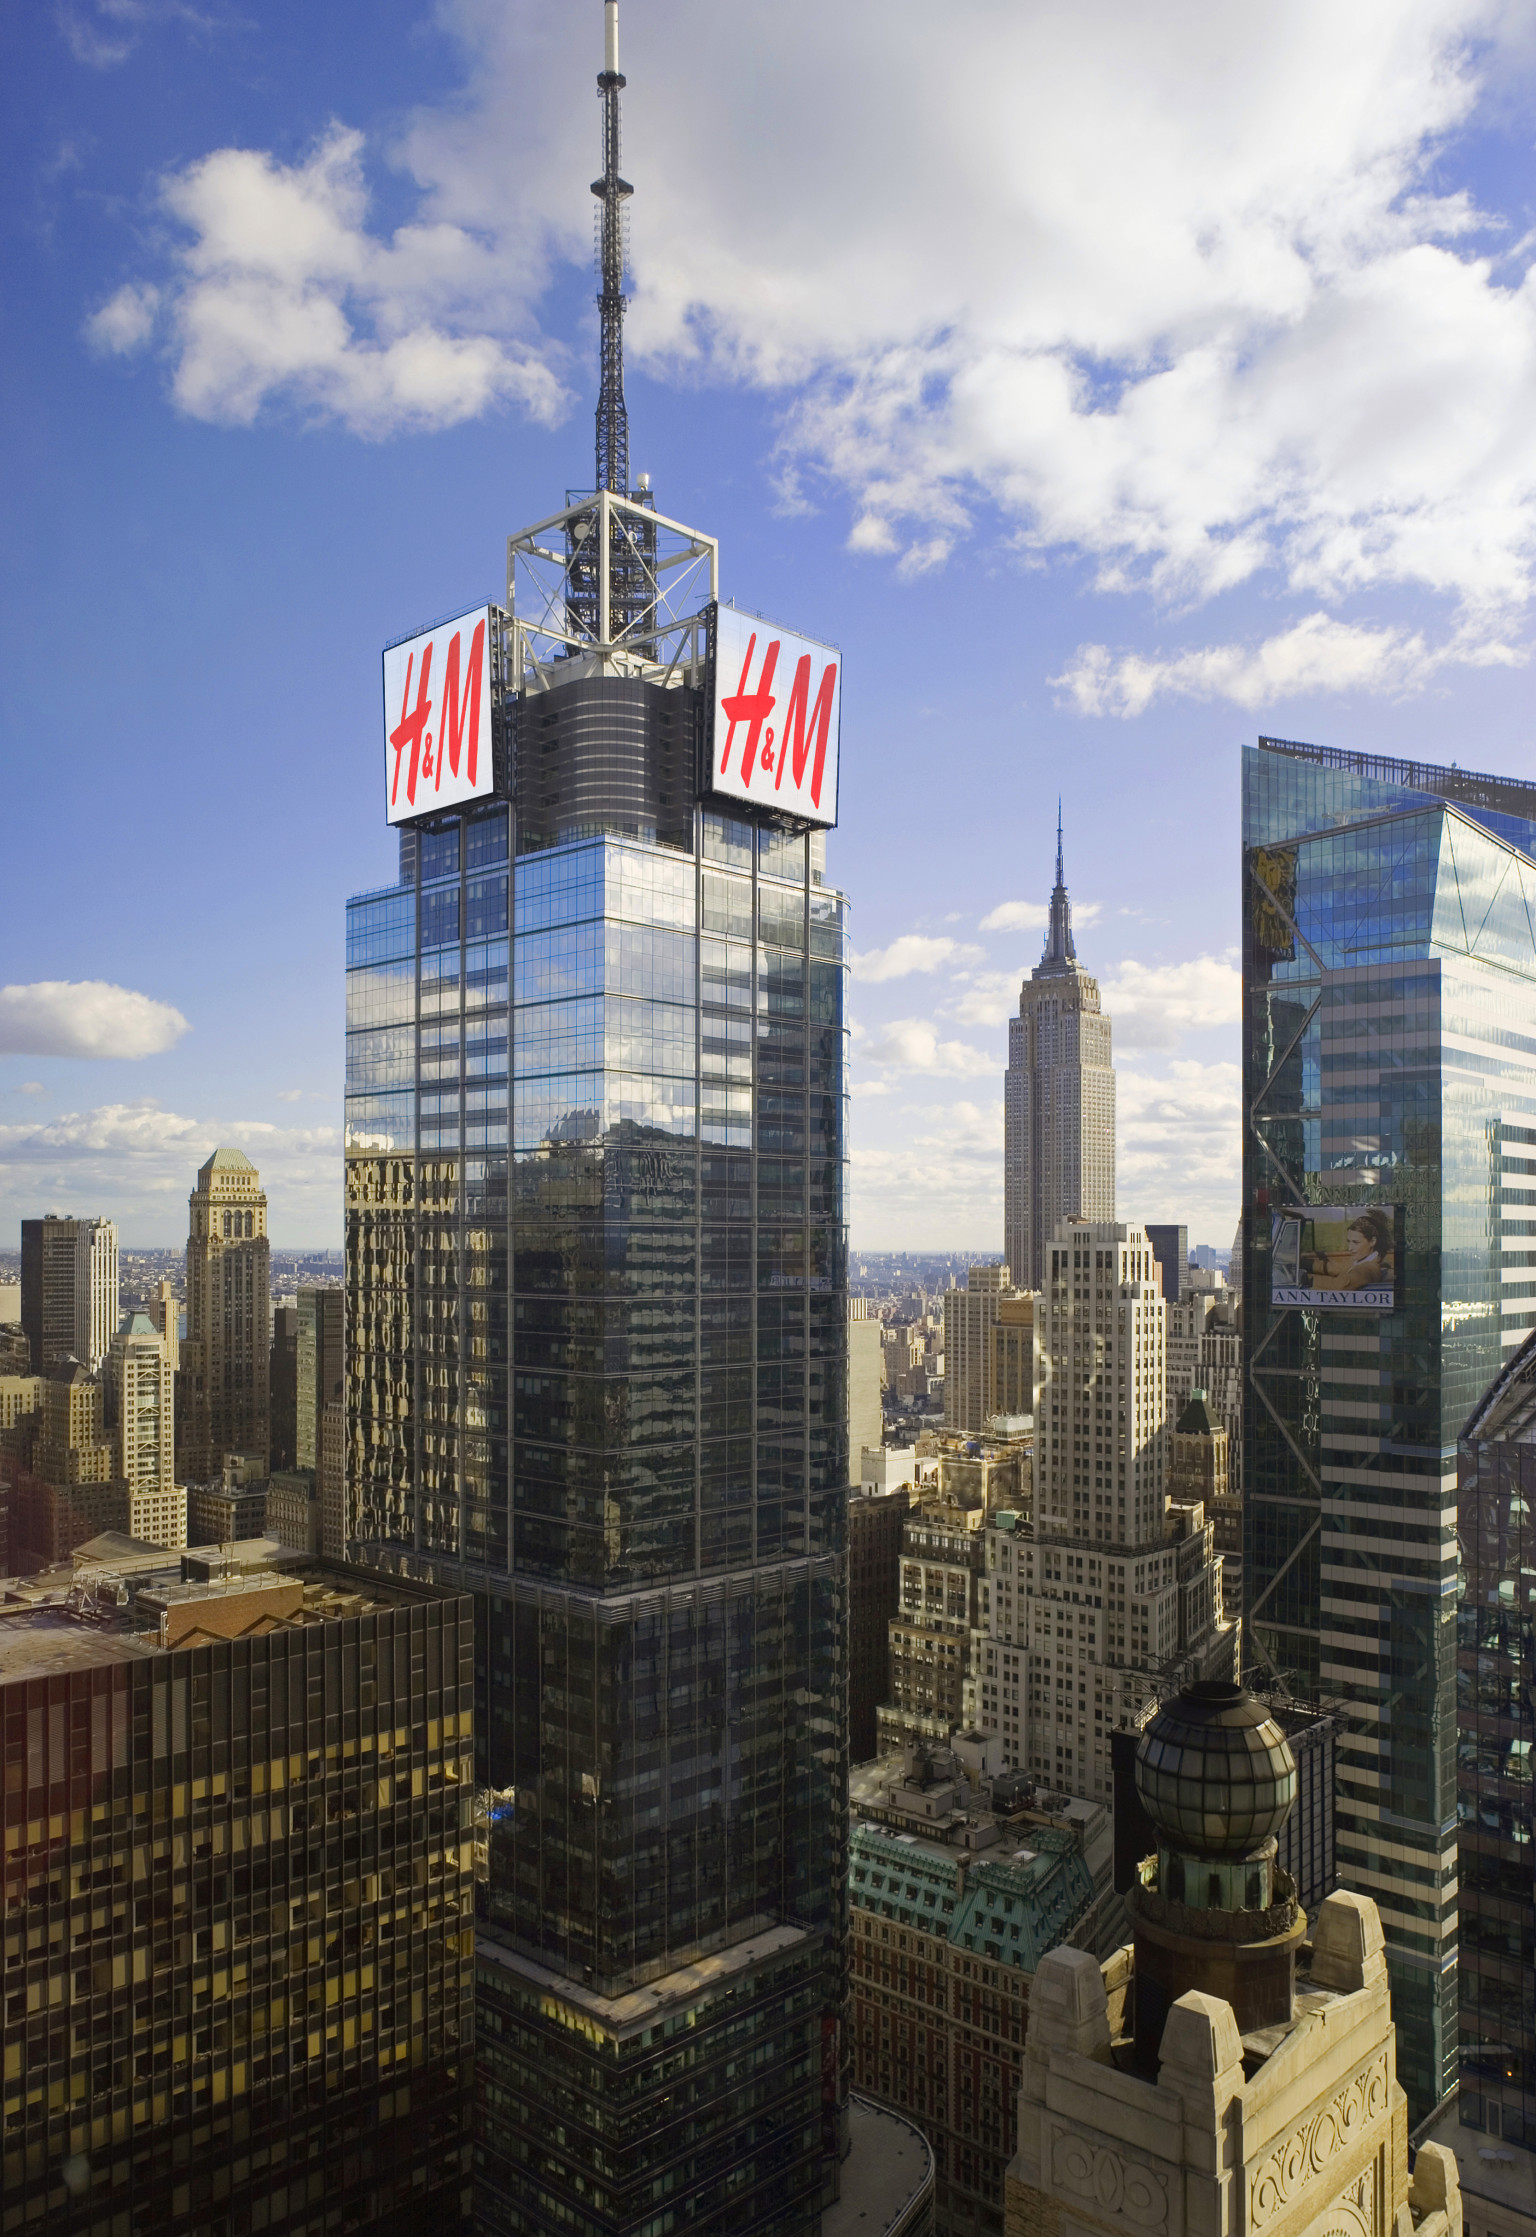 H&M New York NY locations, hours, phone number, map and driving directions.